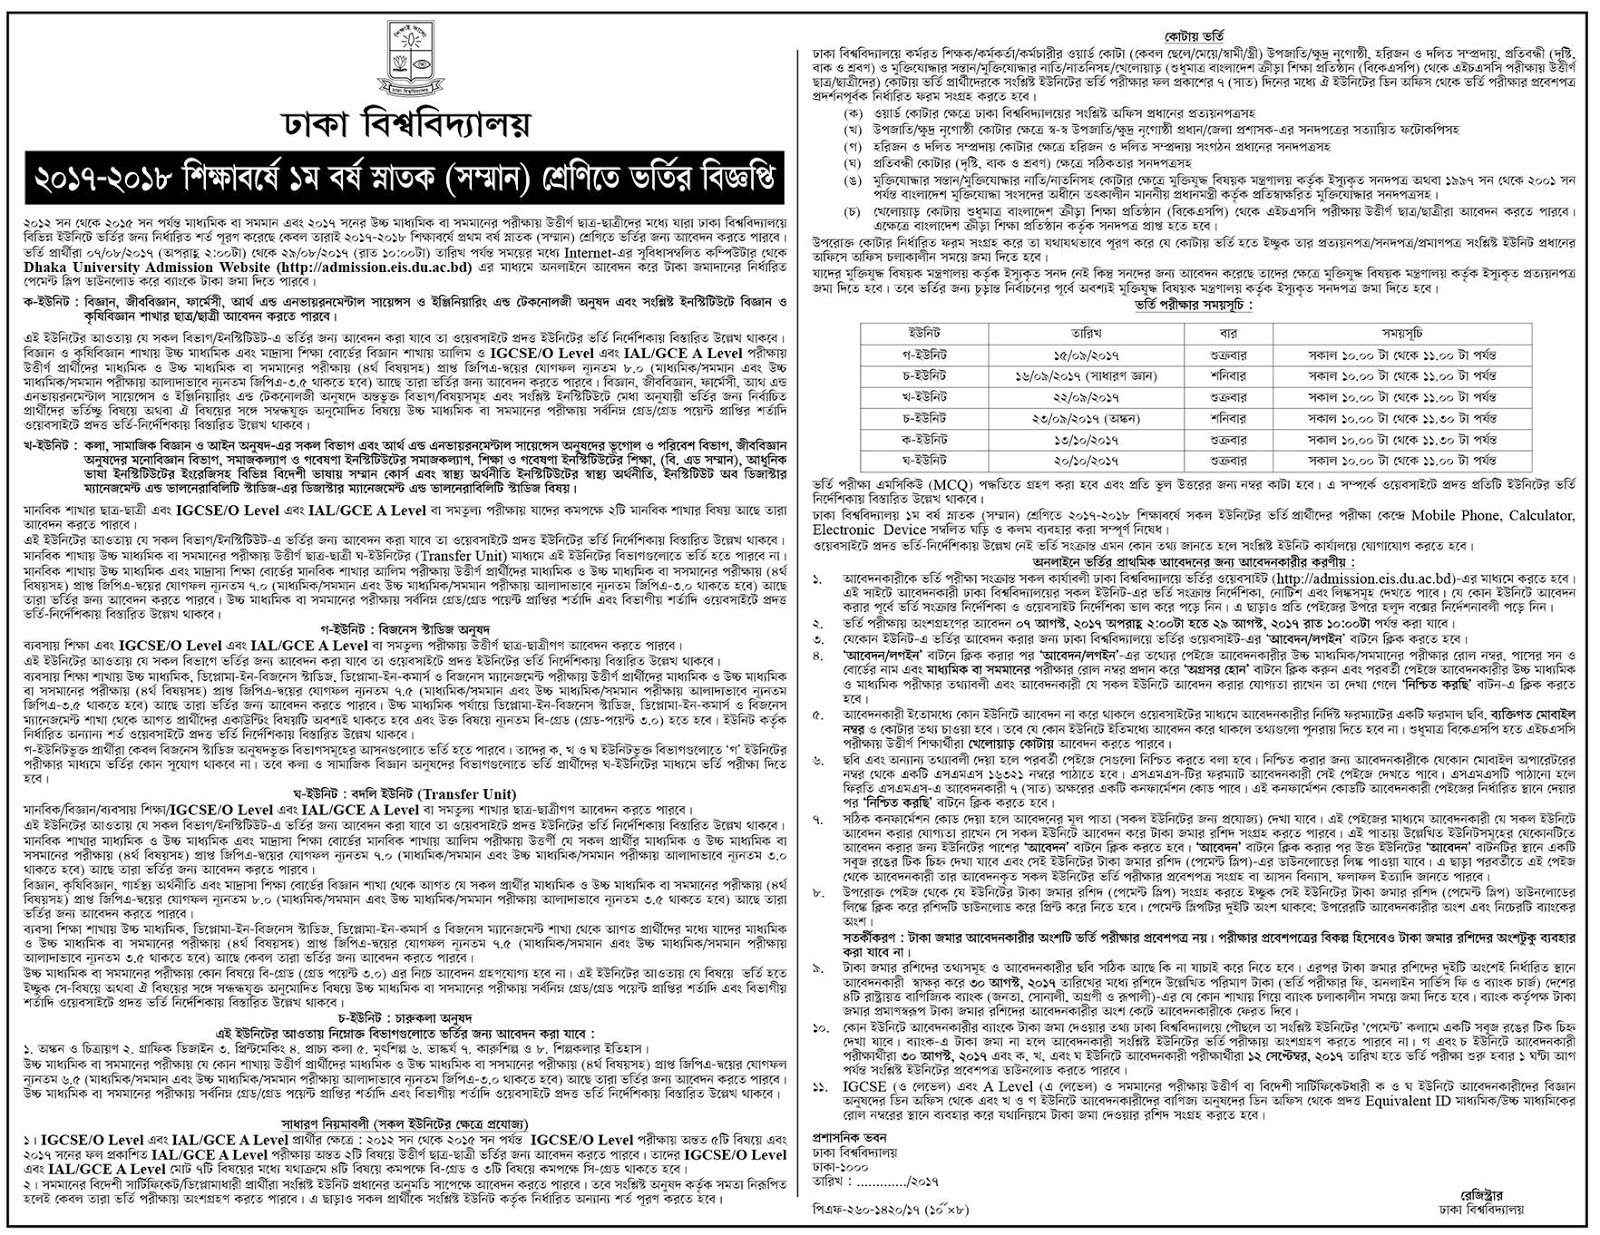 Dhaka University Admission Notice Circular 2017-18   Worldwide ... on application in spanish, application cartoon, application meaning in science, application trial, application to join motorcycle club, application approved, application insights, application for rental, application to be my boyfriend, application to join a club, application to rent california, application for employment, application template, application submitted, application service provider, application database diagram, application error, application for scholarship sample, application to date my son, application clip art,